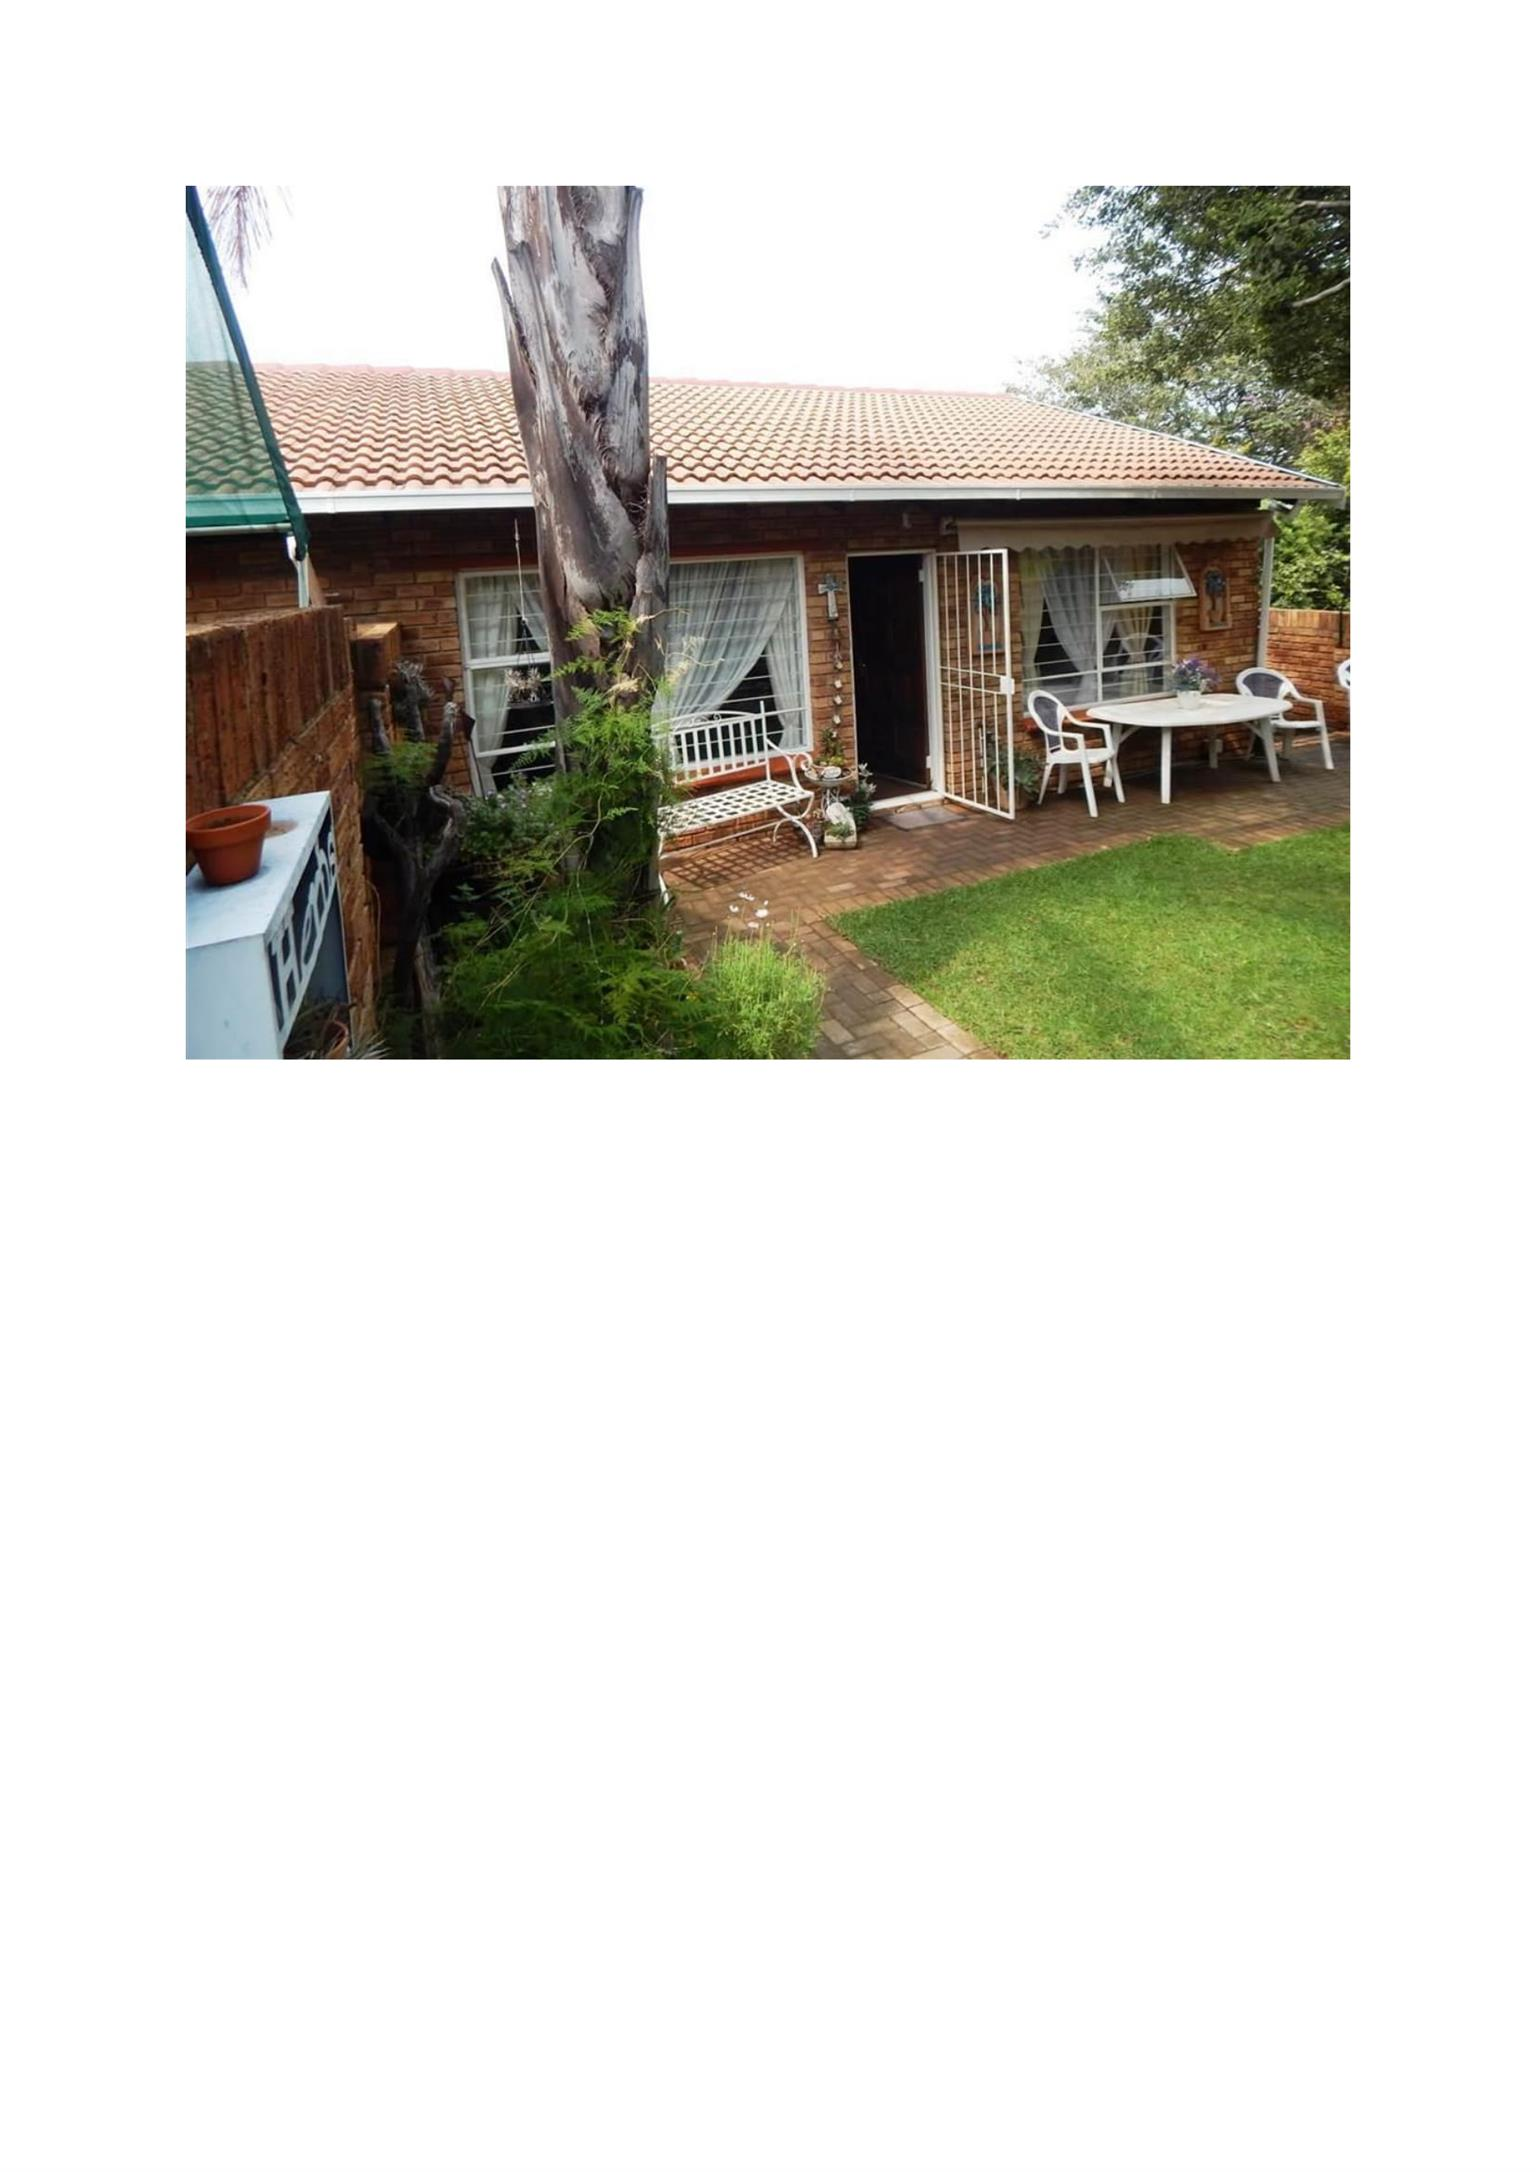 To rent Townhouse in Rangeview